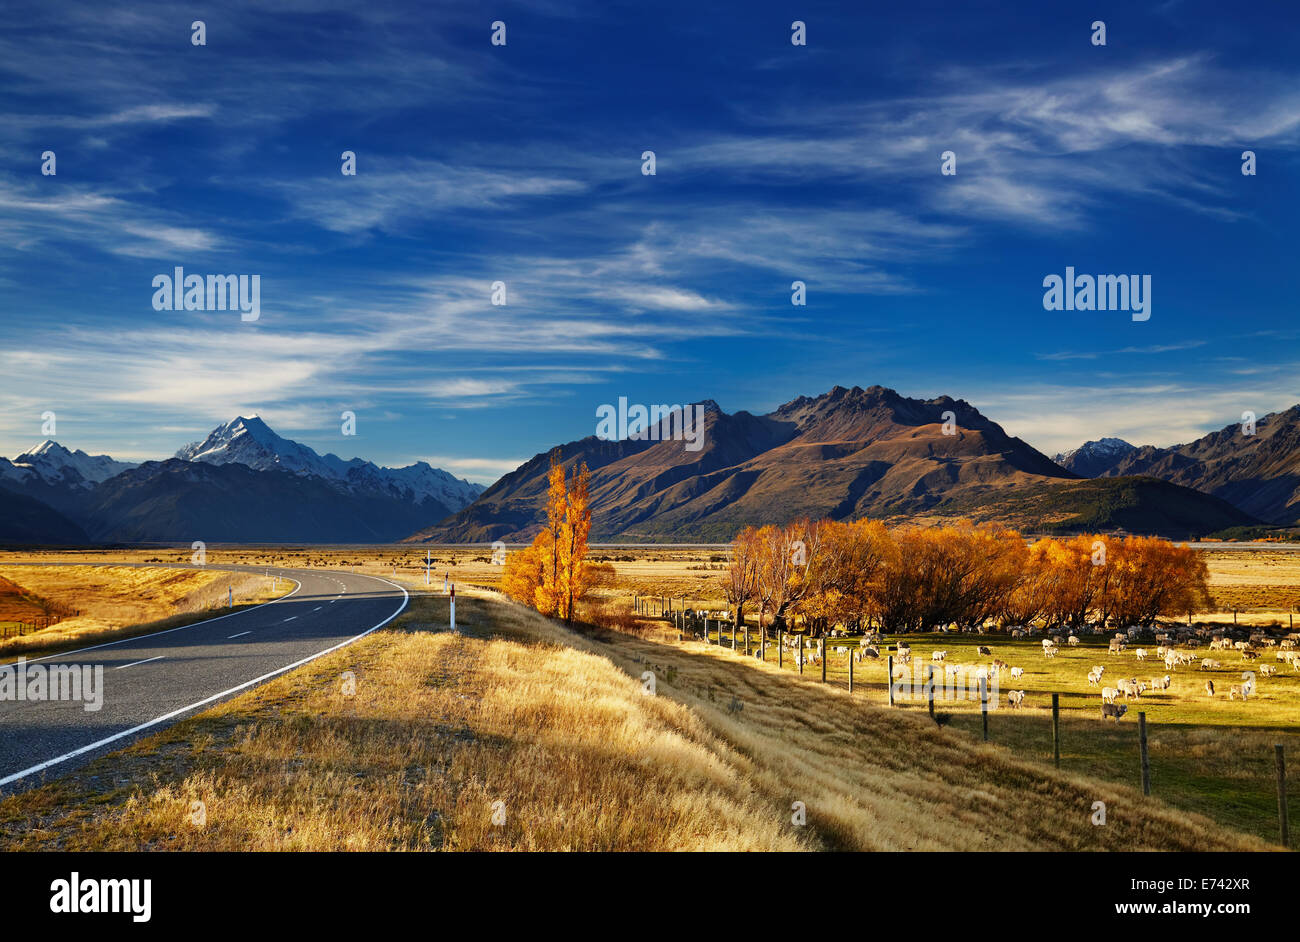 Farmland with grazing sheep and Mount Cook on background, Canterbury, New Zealand - Stock Image